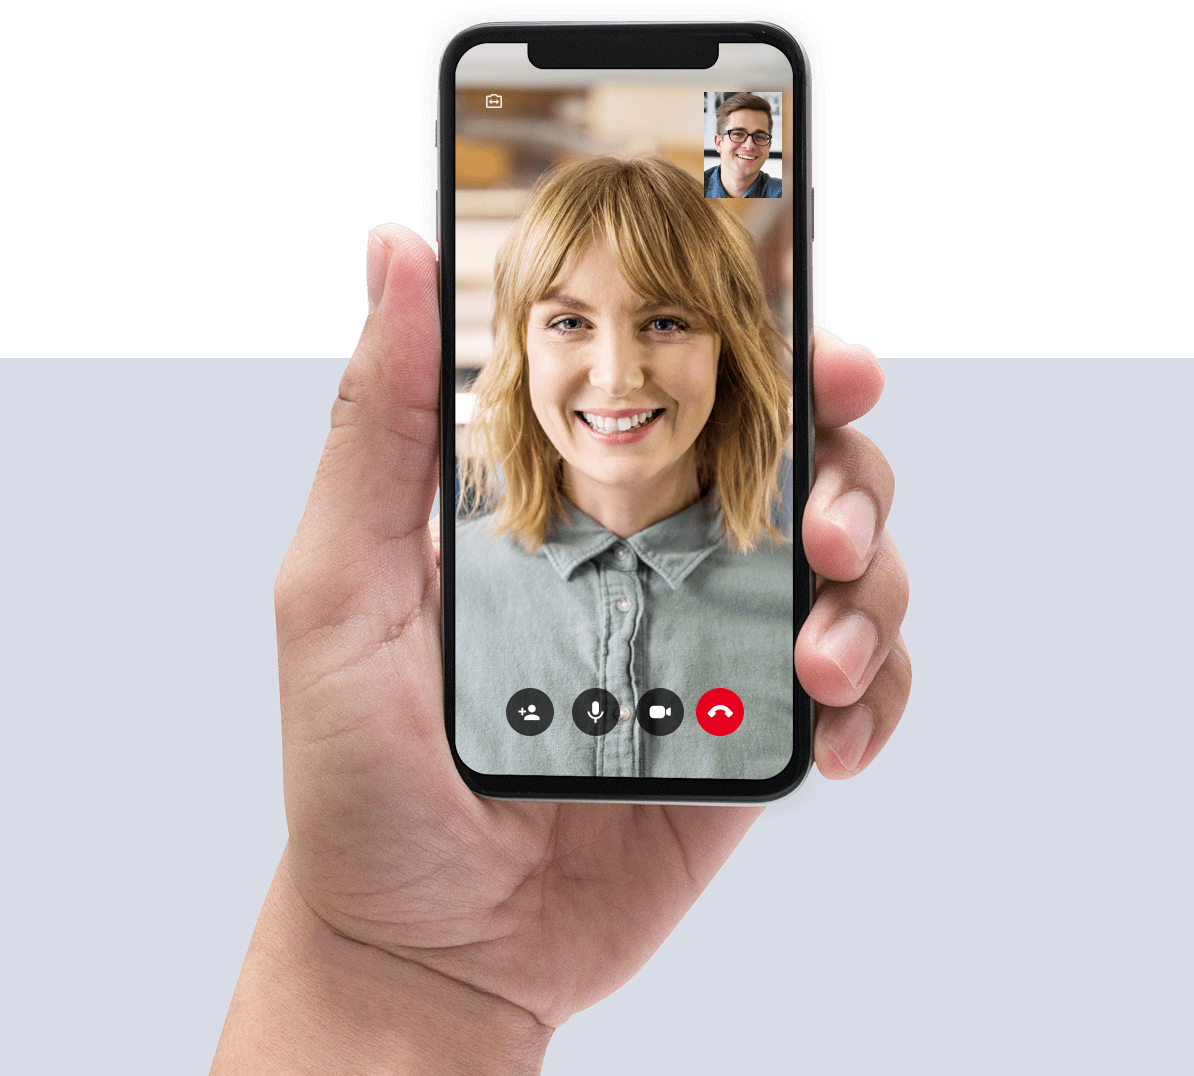 Professional on mobile phone video call.